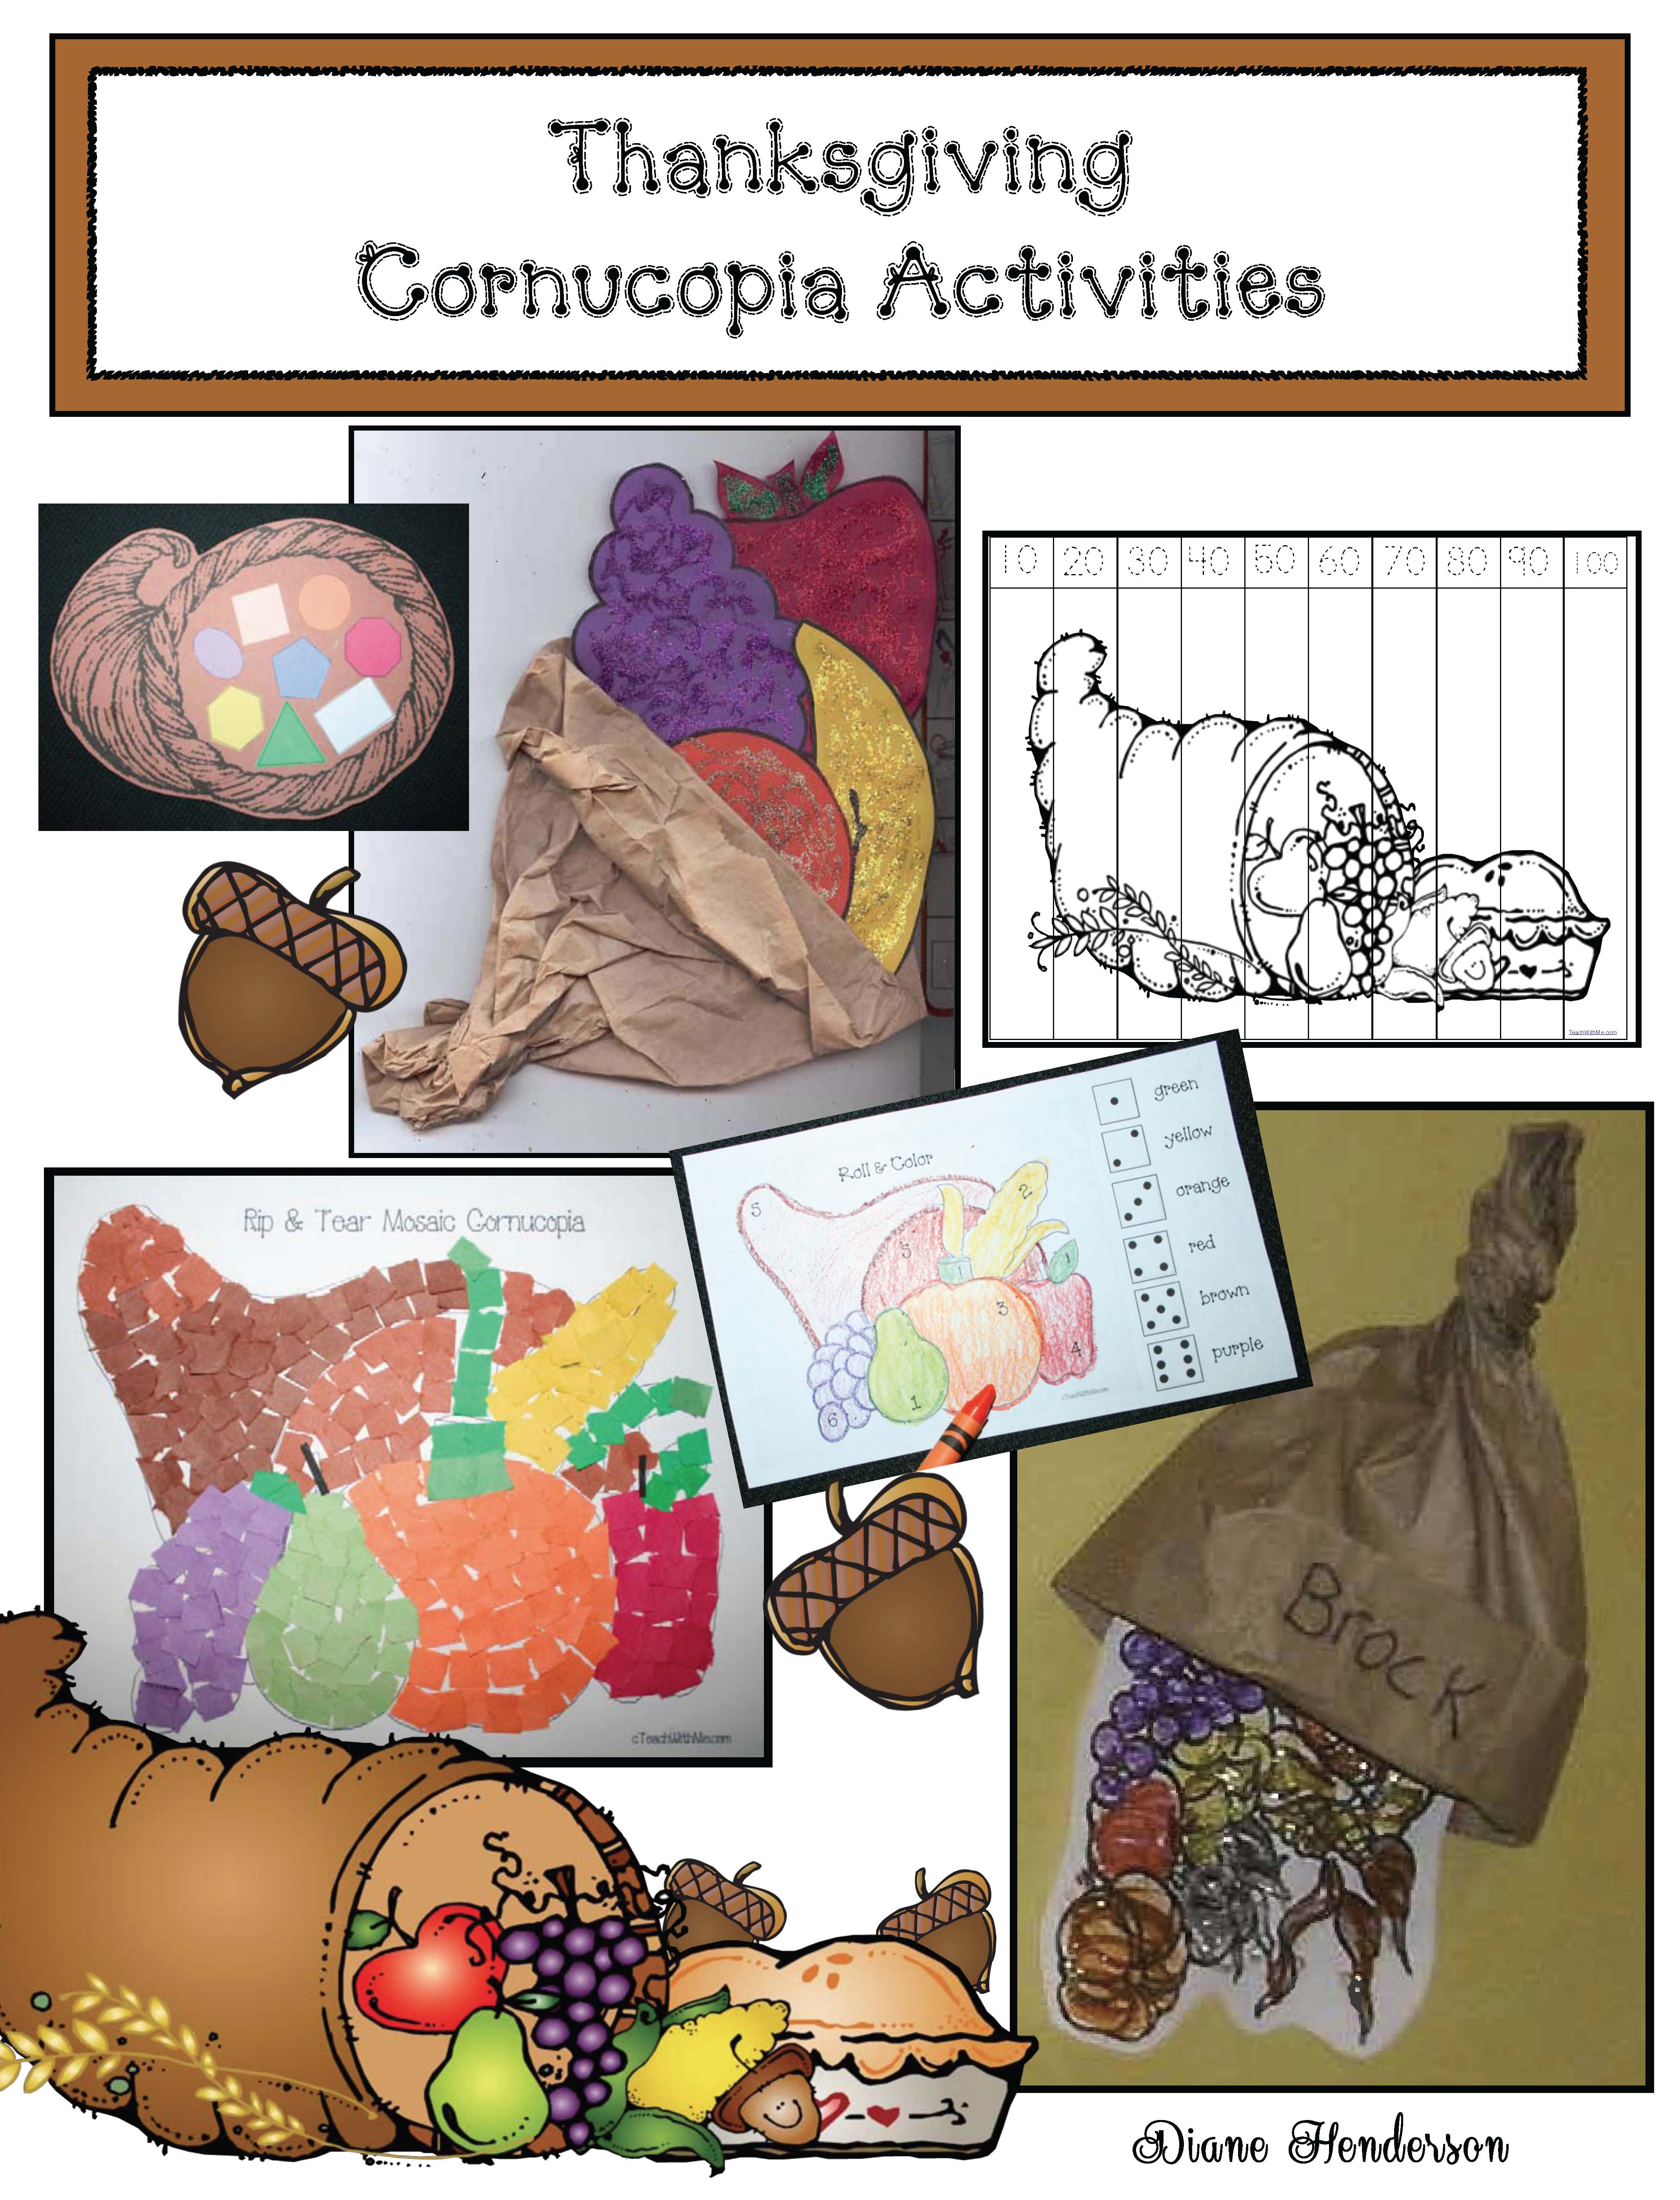 Thanksgiving activities, thanksgiving crafts, thanksgiving bulletin boards, cornucopia crafts, cornucopia activities